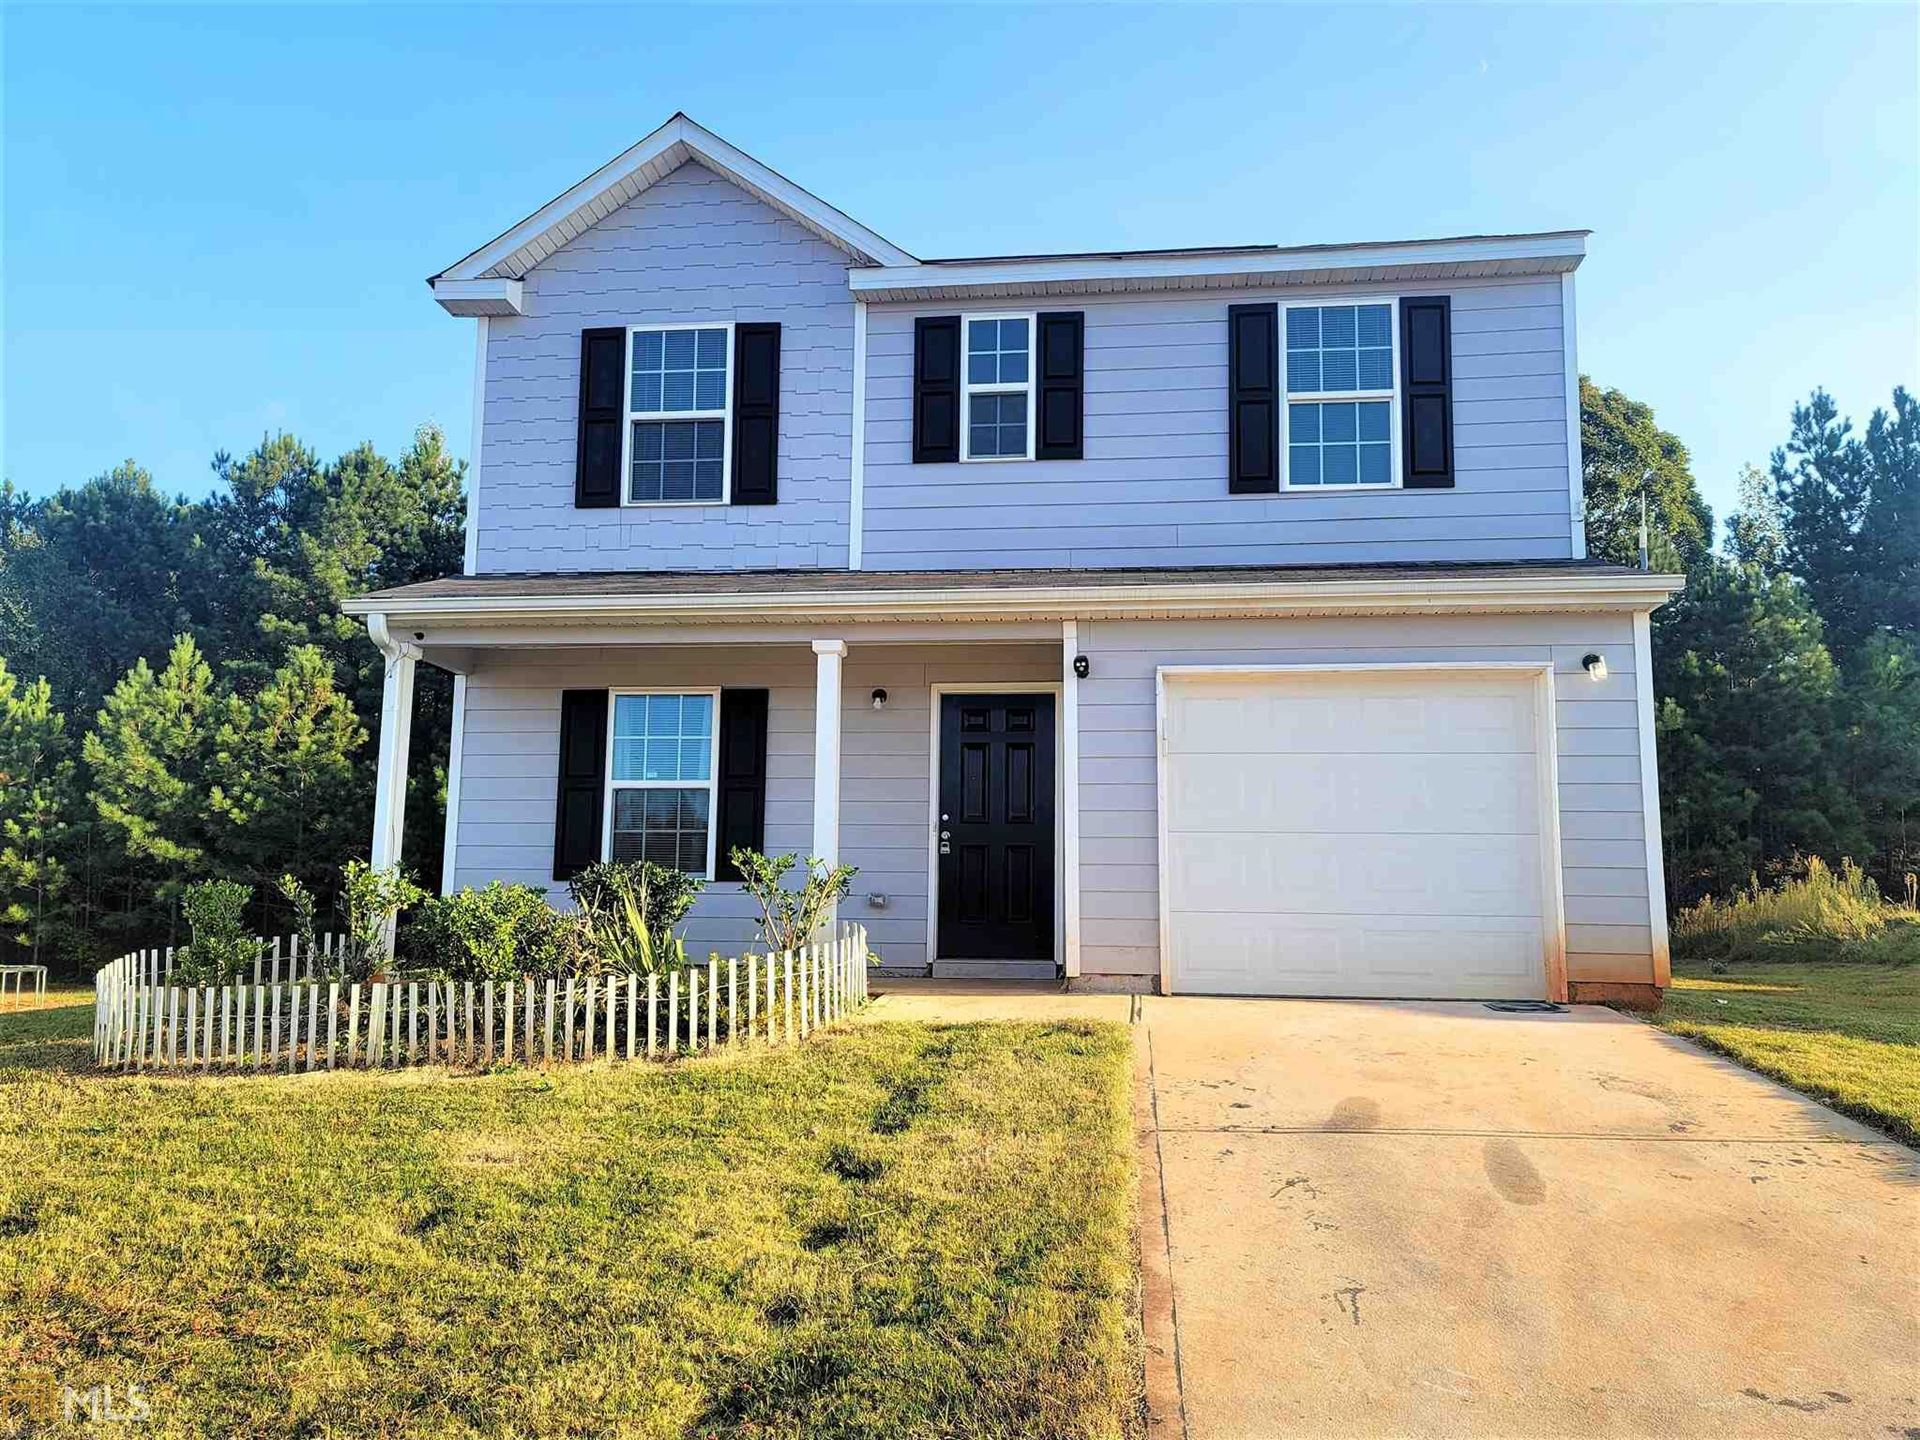 1704 Mary Ave, Griffin, GA 30224 - #: 8877225